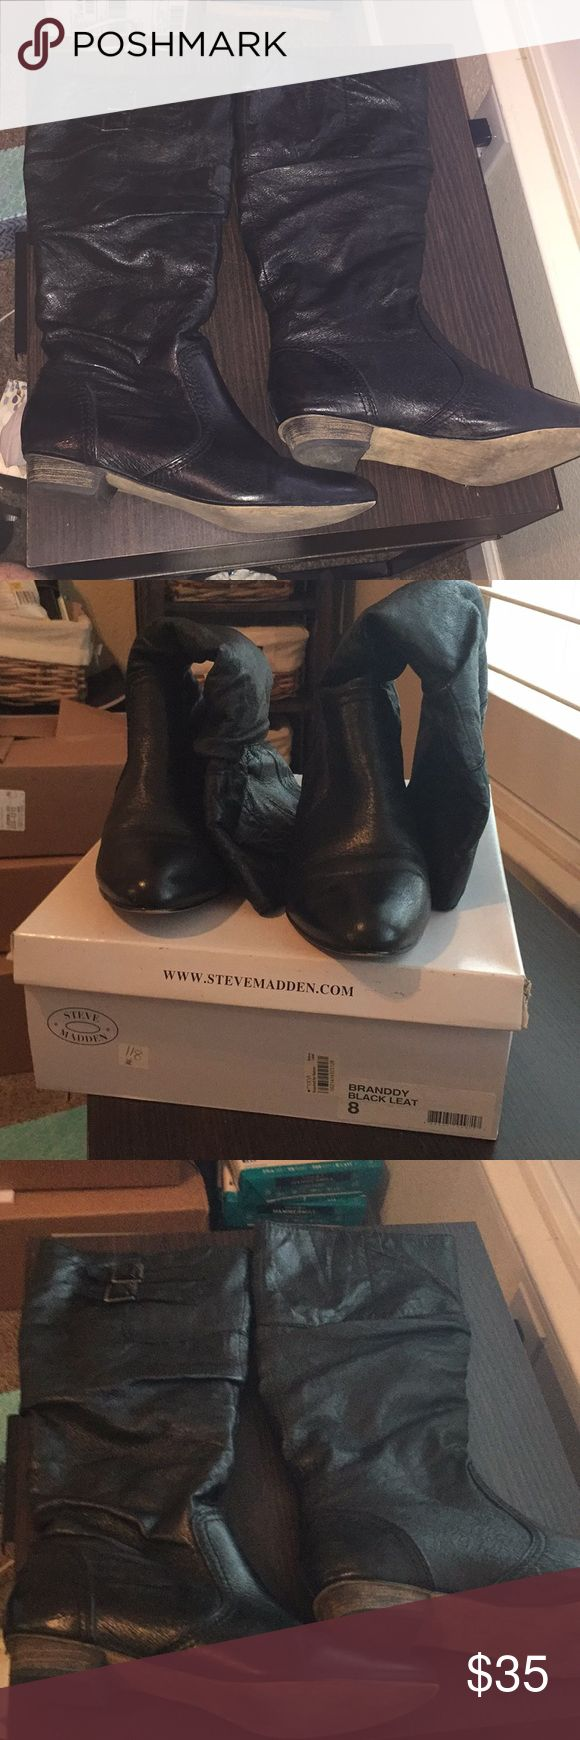 Steve Madden Branddy Boots Steve Madden Branddy with leather upper fabric lining. Size 8M. Black with two buckles on the top outside of the boo (see last picture) Steve Madden Shoes Combat & Moto Boots